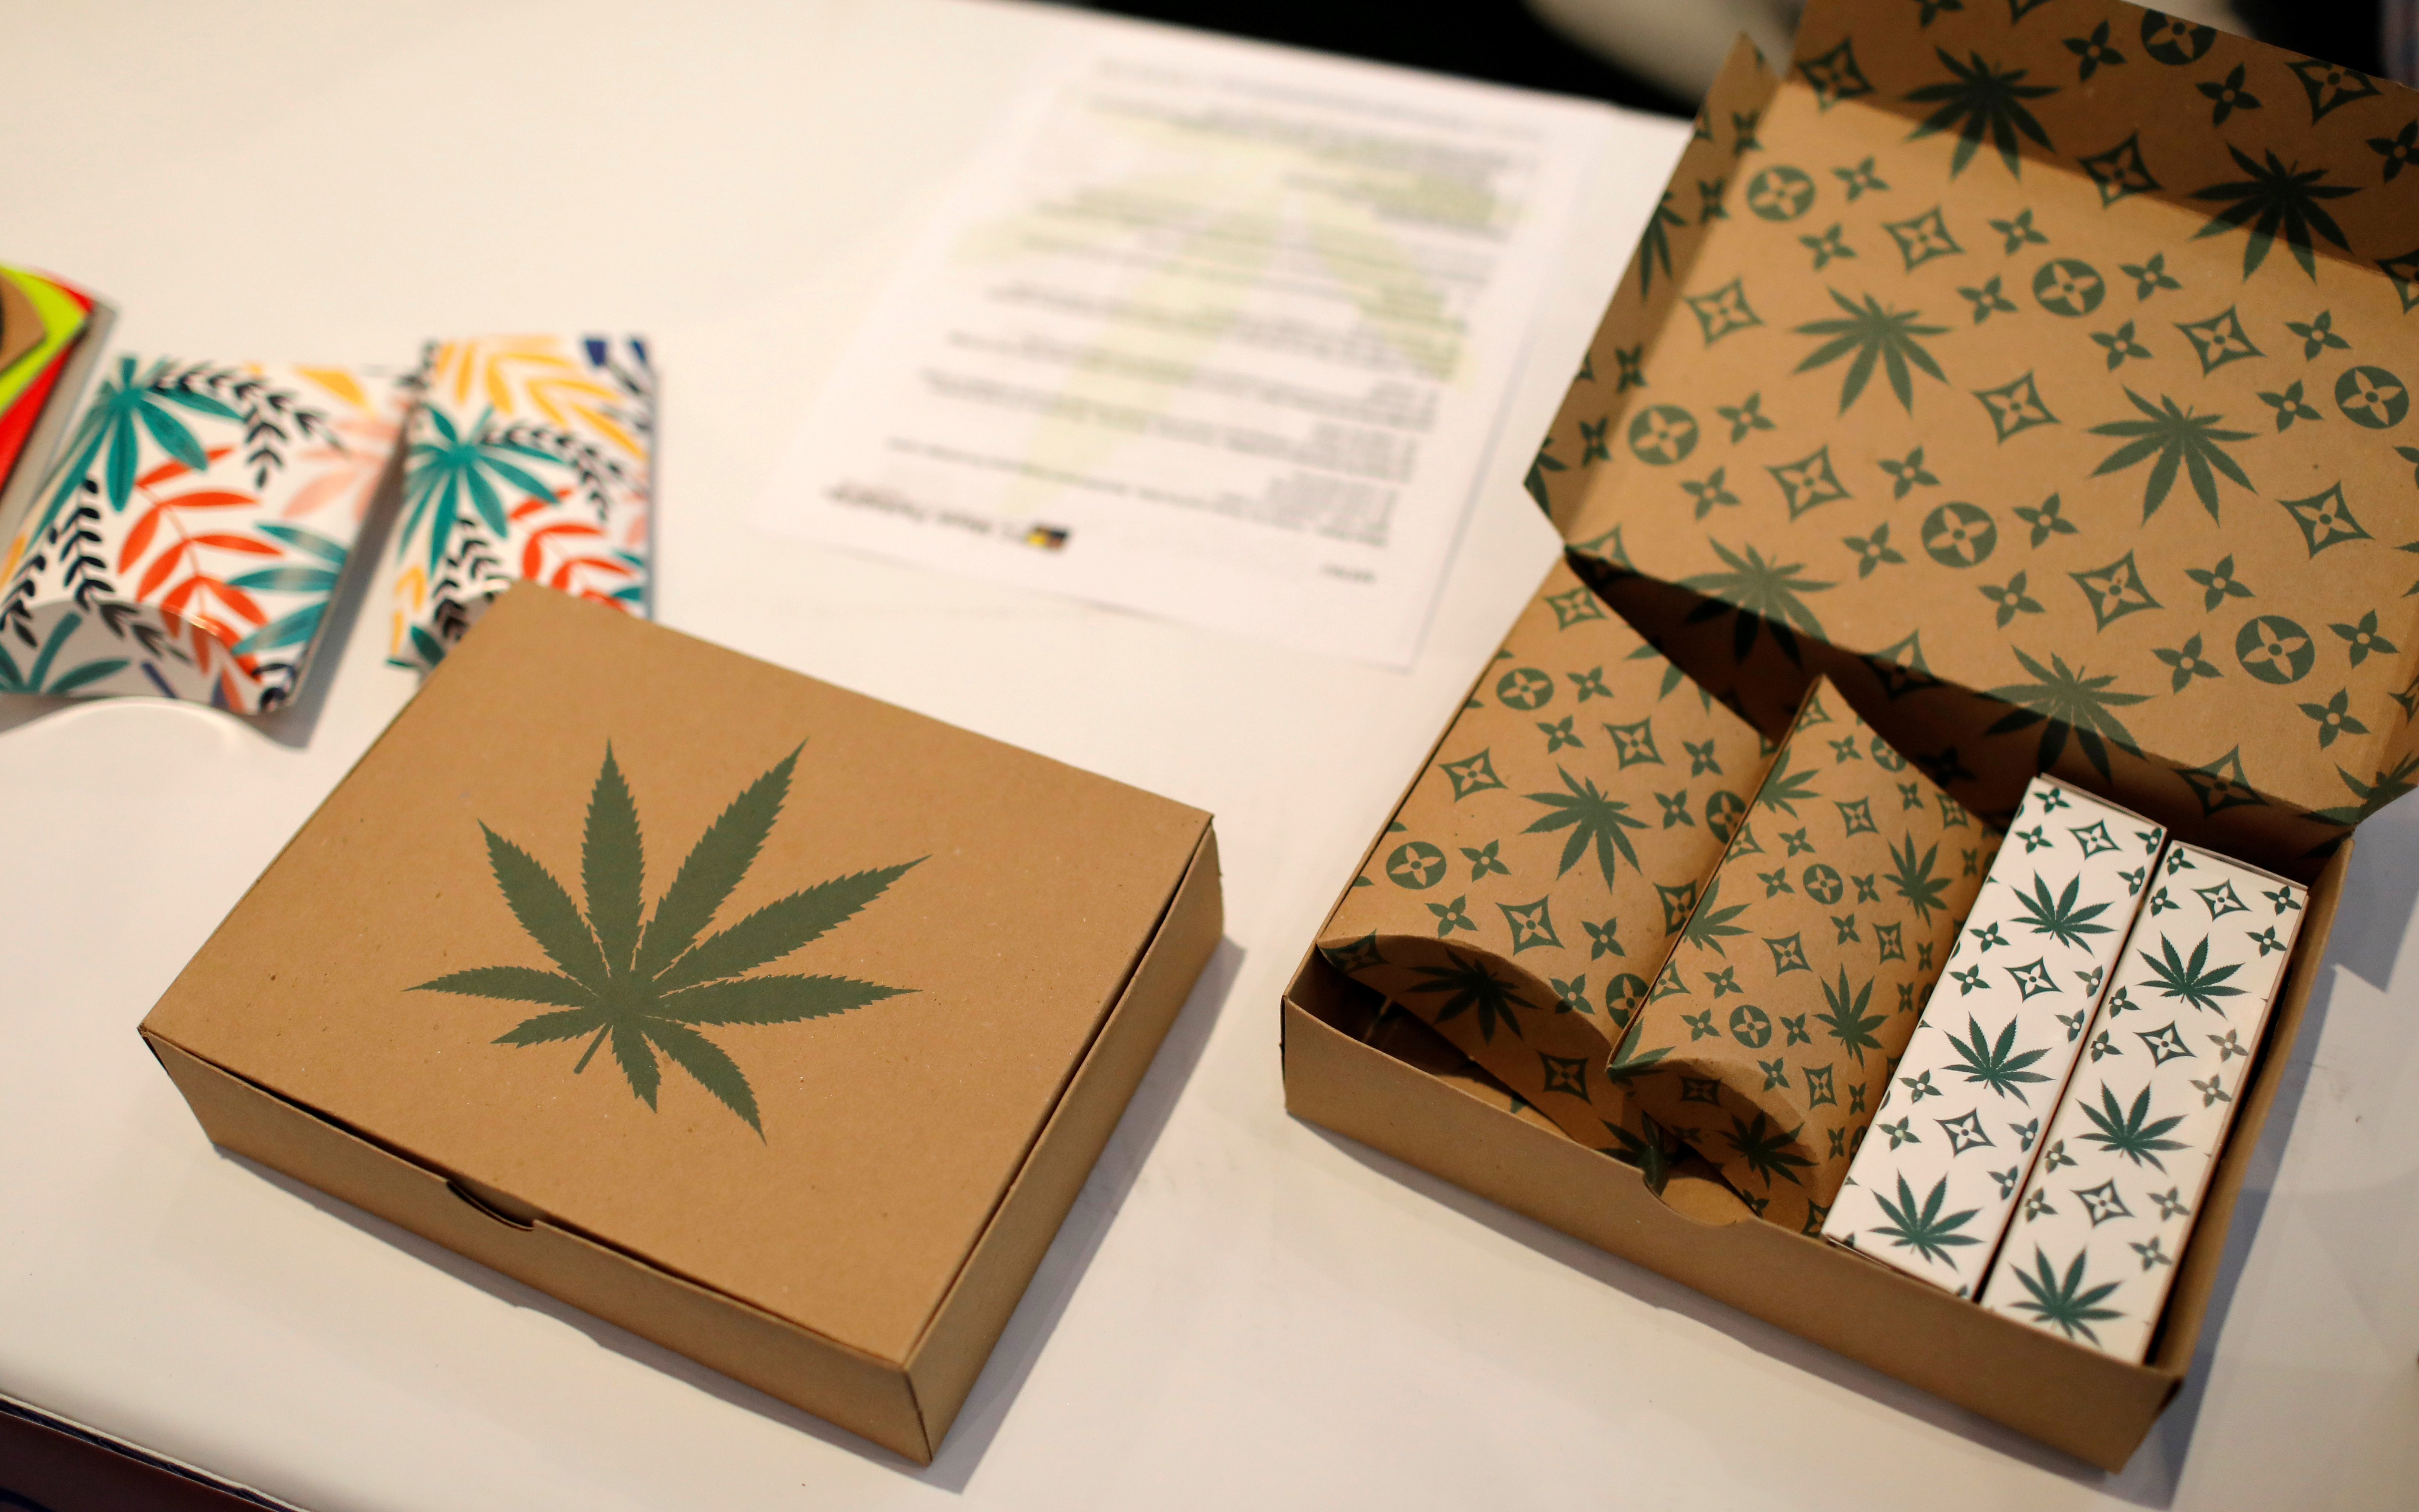 Cannabis product boxes are displayed at The Cannabis World Congress & Business Exposition (CWCBExpo) trade show in New York City, New York, U.S., May 30, 2019. REUTERS/Mike Segar/File Photo